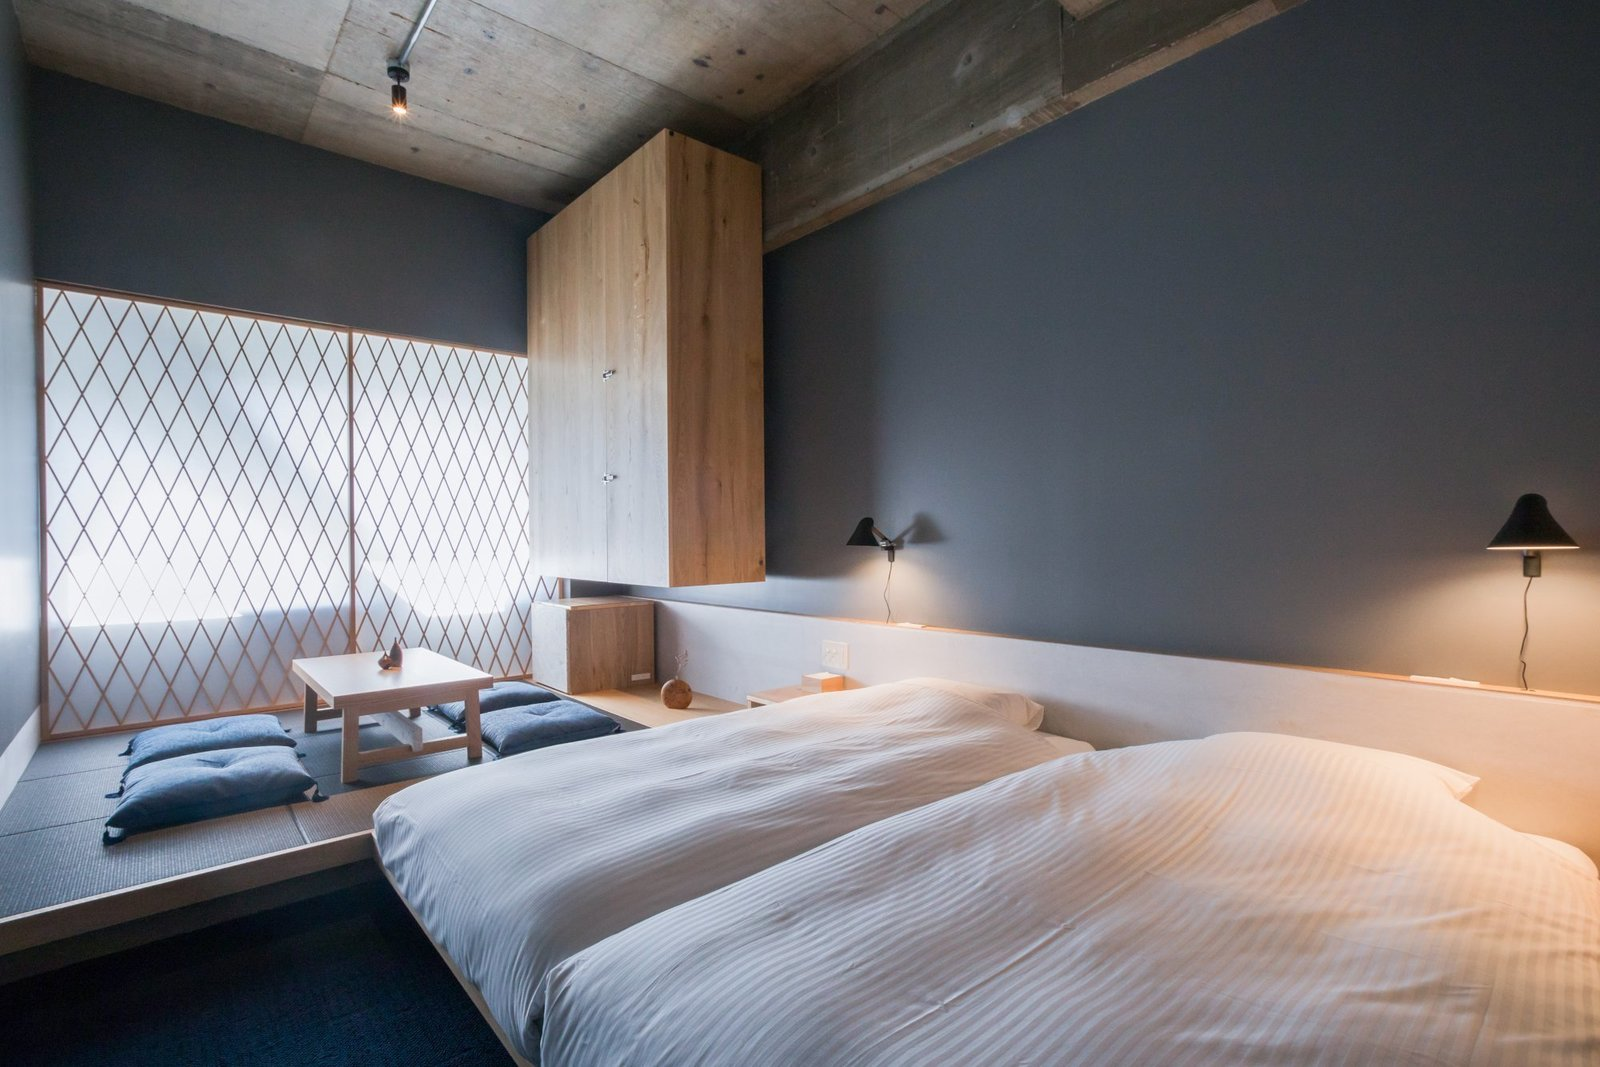 Bedroom, Bed, Wall, Track, Rug, Carpet, and Storage The Share Hotels Kumu Kanazawa in Kanazawa, Japan  Best Bedroom Bed Rug Carpet Wall Photos from 10 Alluring Places to Stay in Japan Under $300 a Night